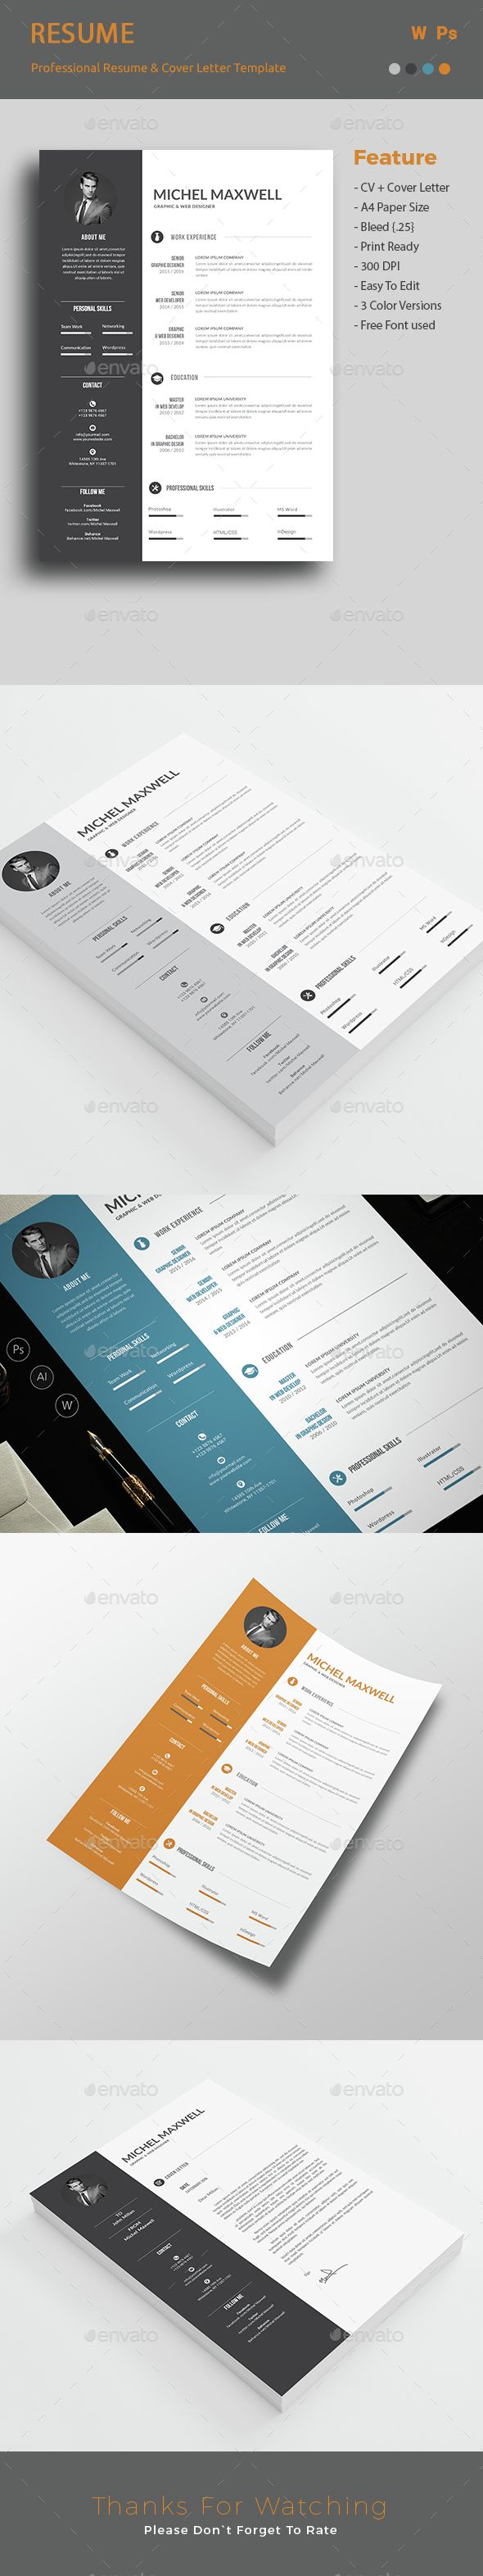 Resume Template PSD Download here httpgraphicrivernetitem 44